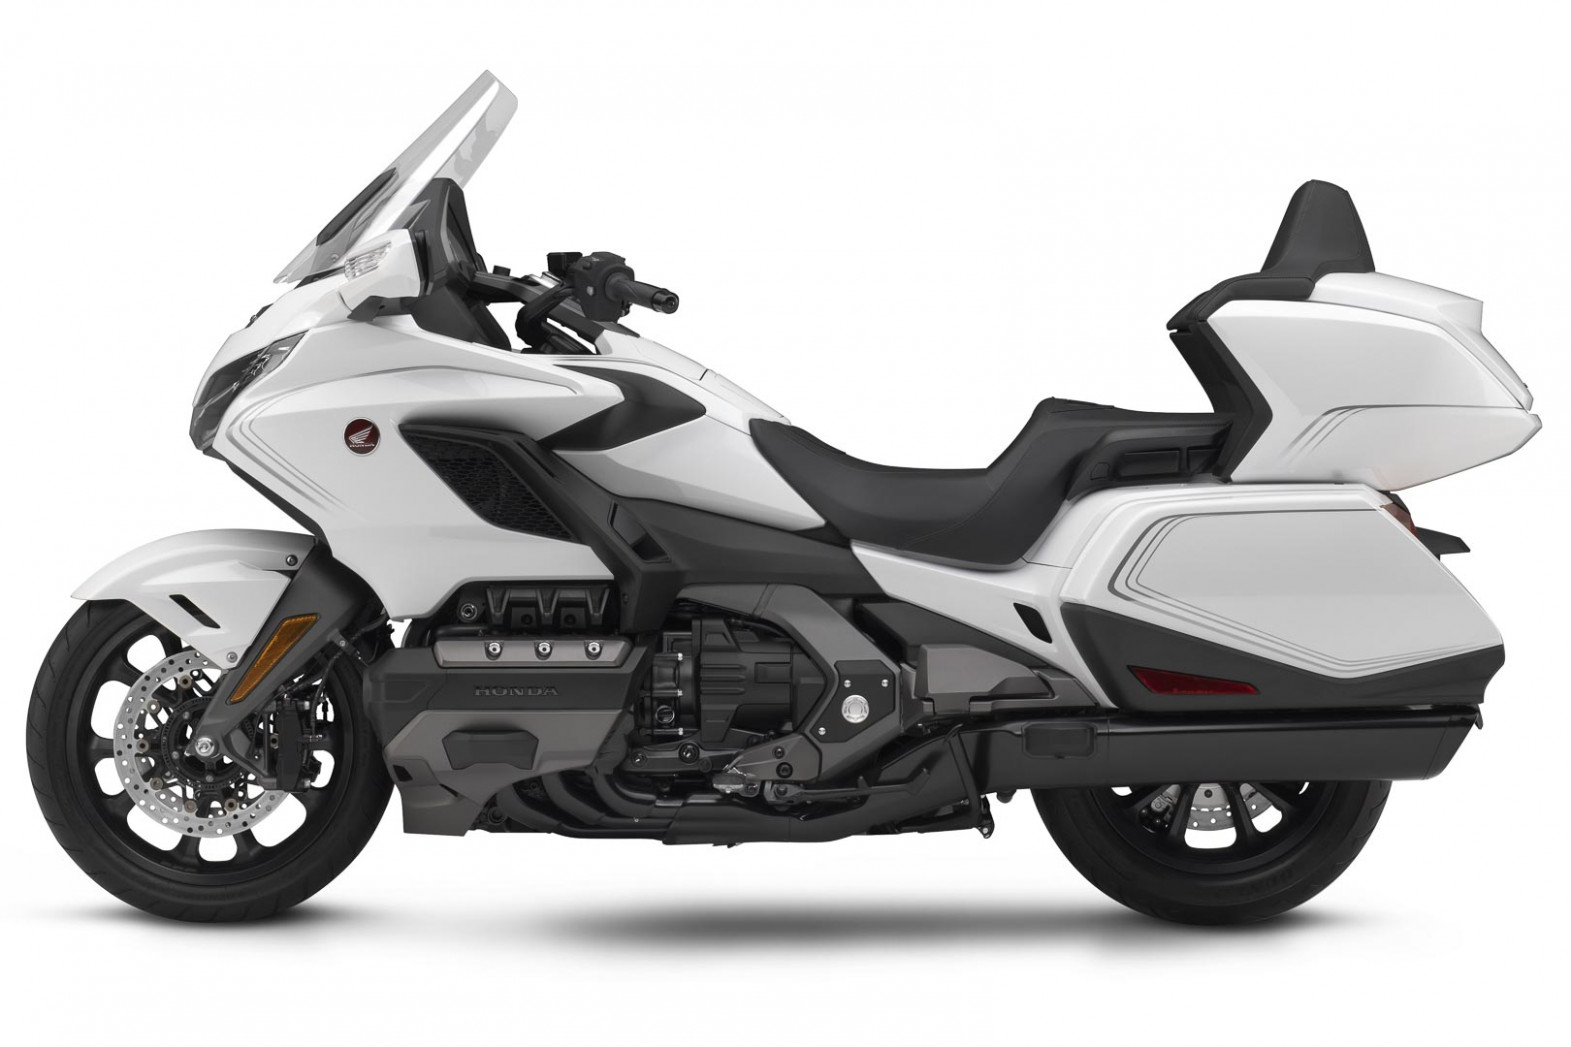 11 Honda Gold Wing Lineup First Look (11 Fast Facts) - 2020 honda goldwing review